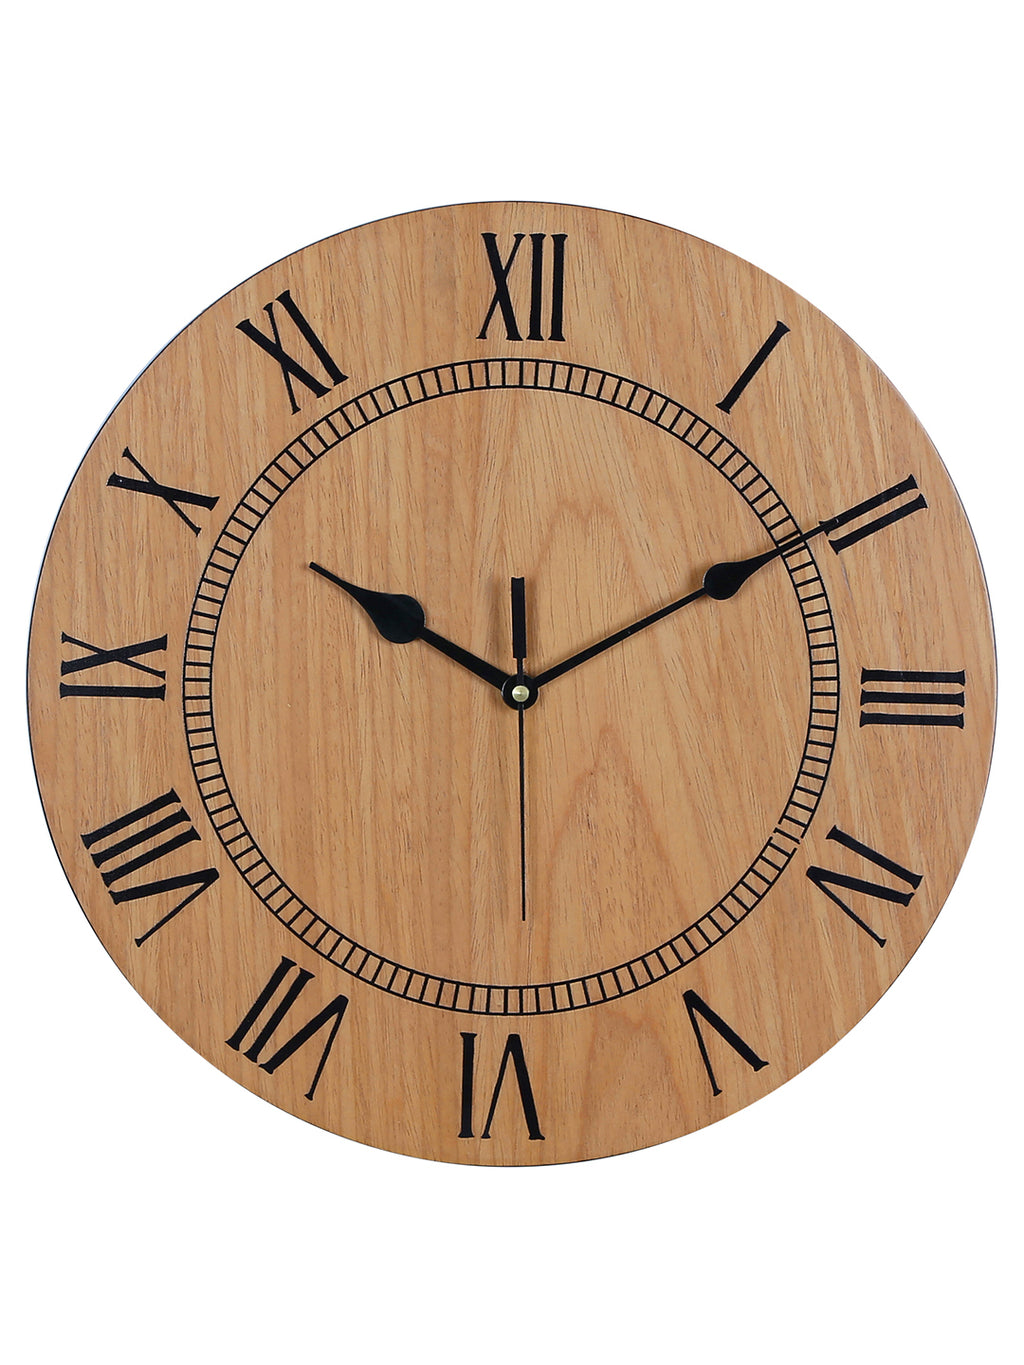 RANGRAGE Handcrafted Circular Wooden Wall Clock